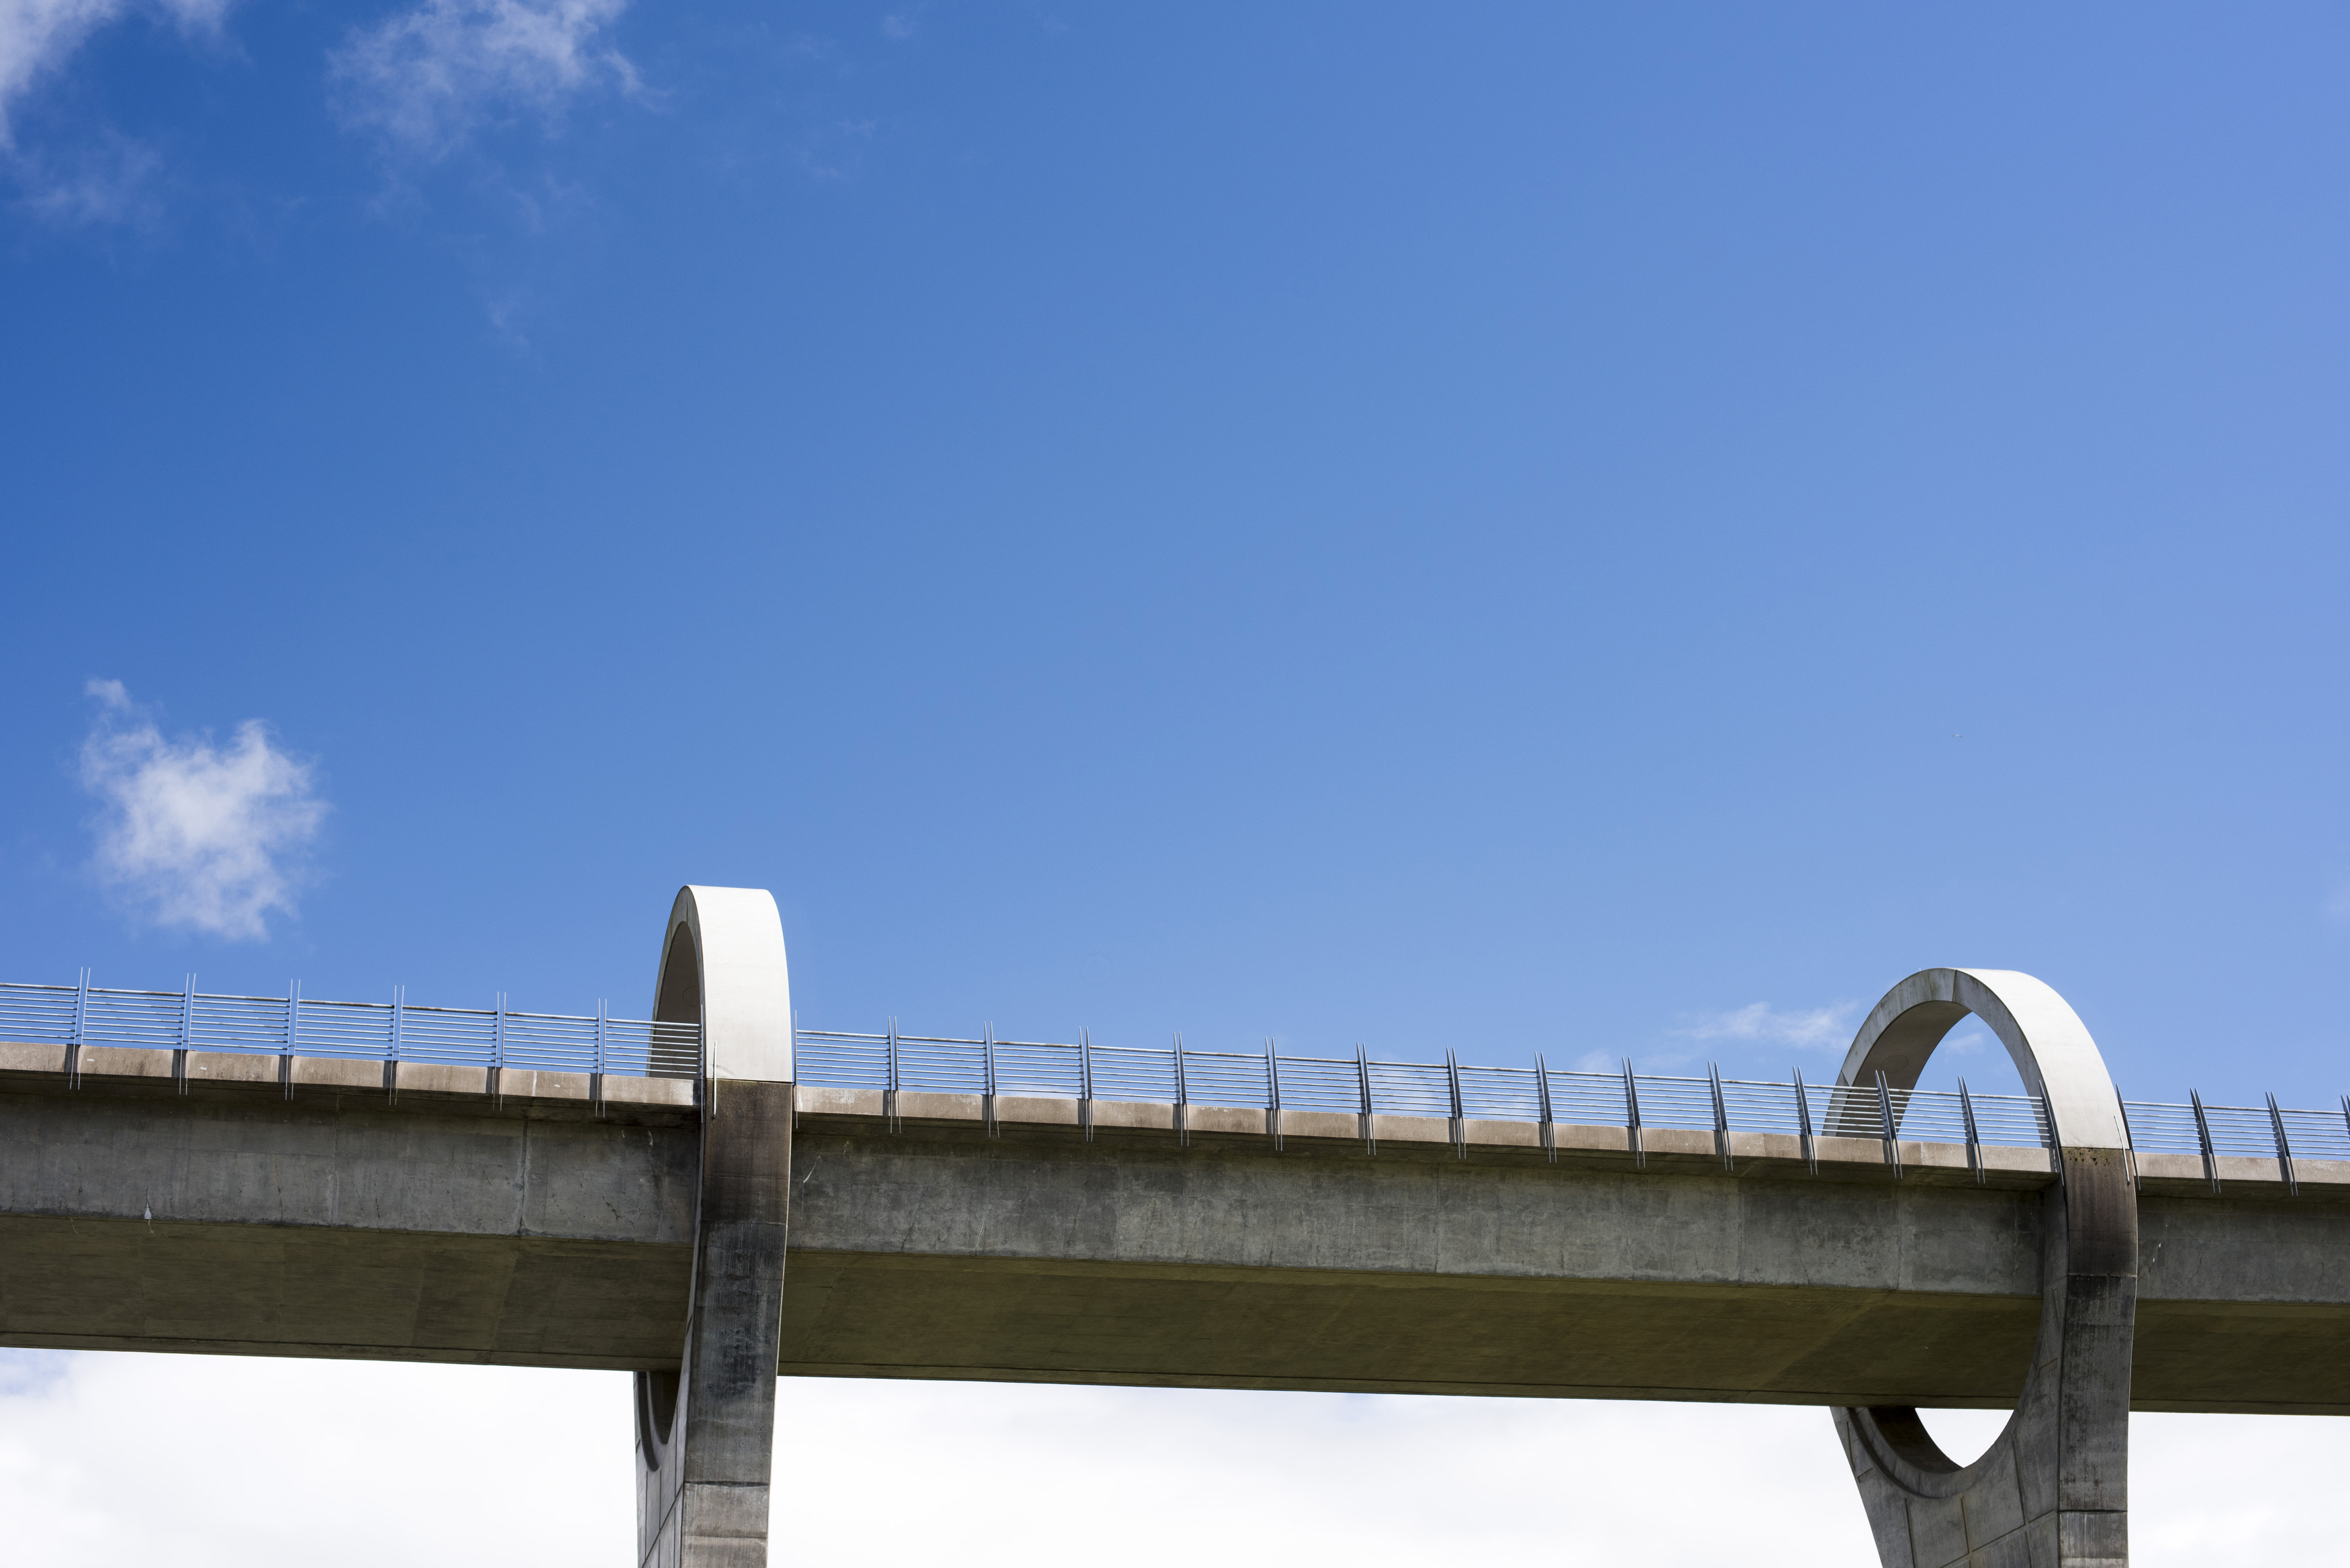 Viaduct for Falkirk Wheel Boat lift structure under blue sky with scattered white clouds in Scotland